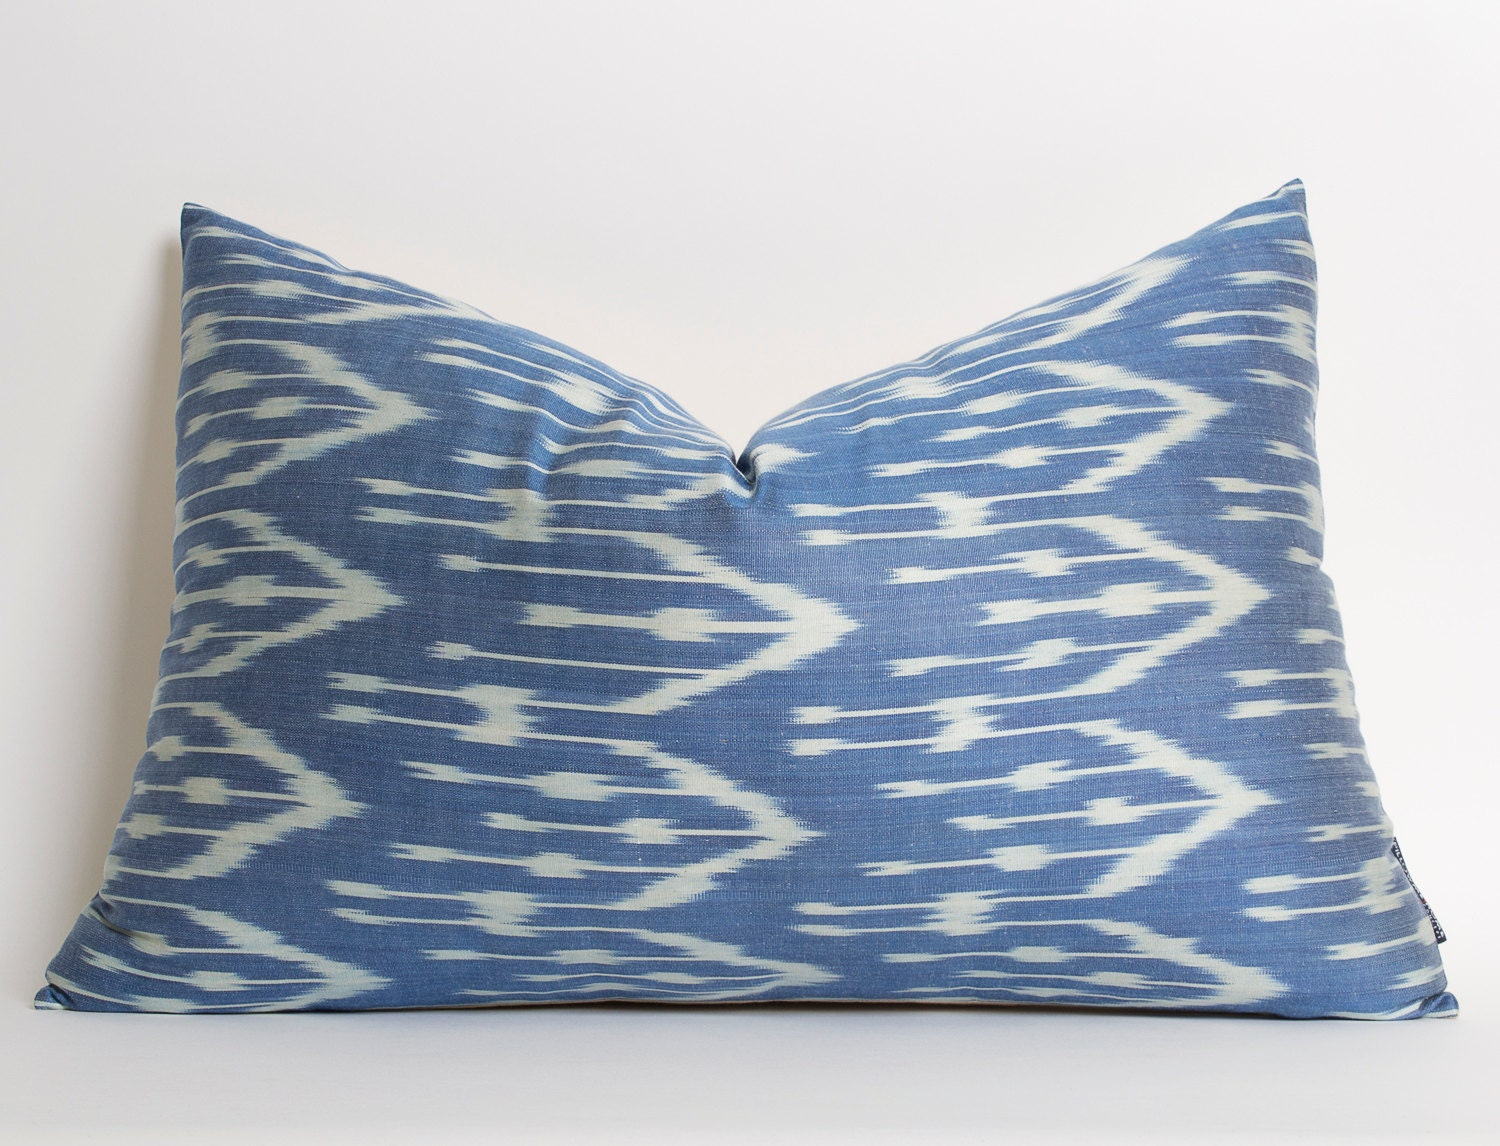 Navy Blue Silk Ikat Pillow Cover Handwoven Decorative Pillows